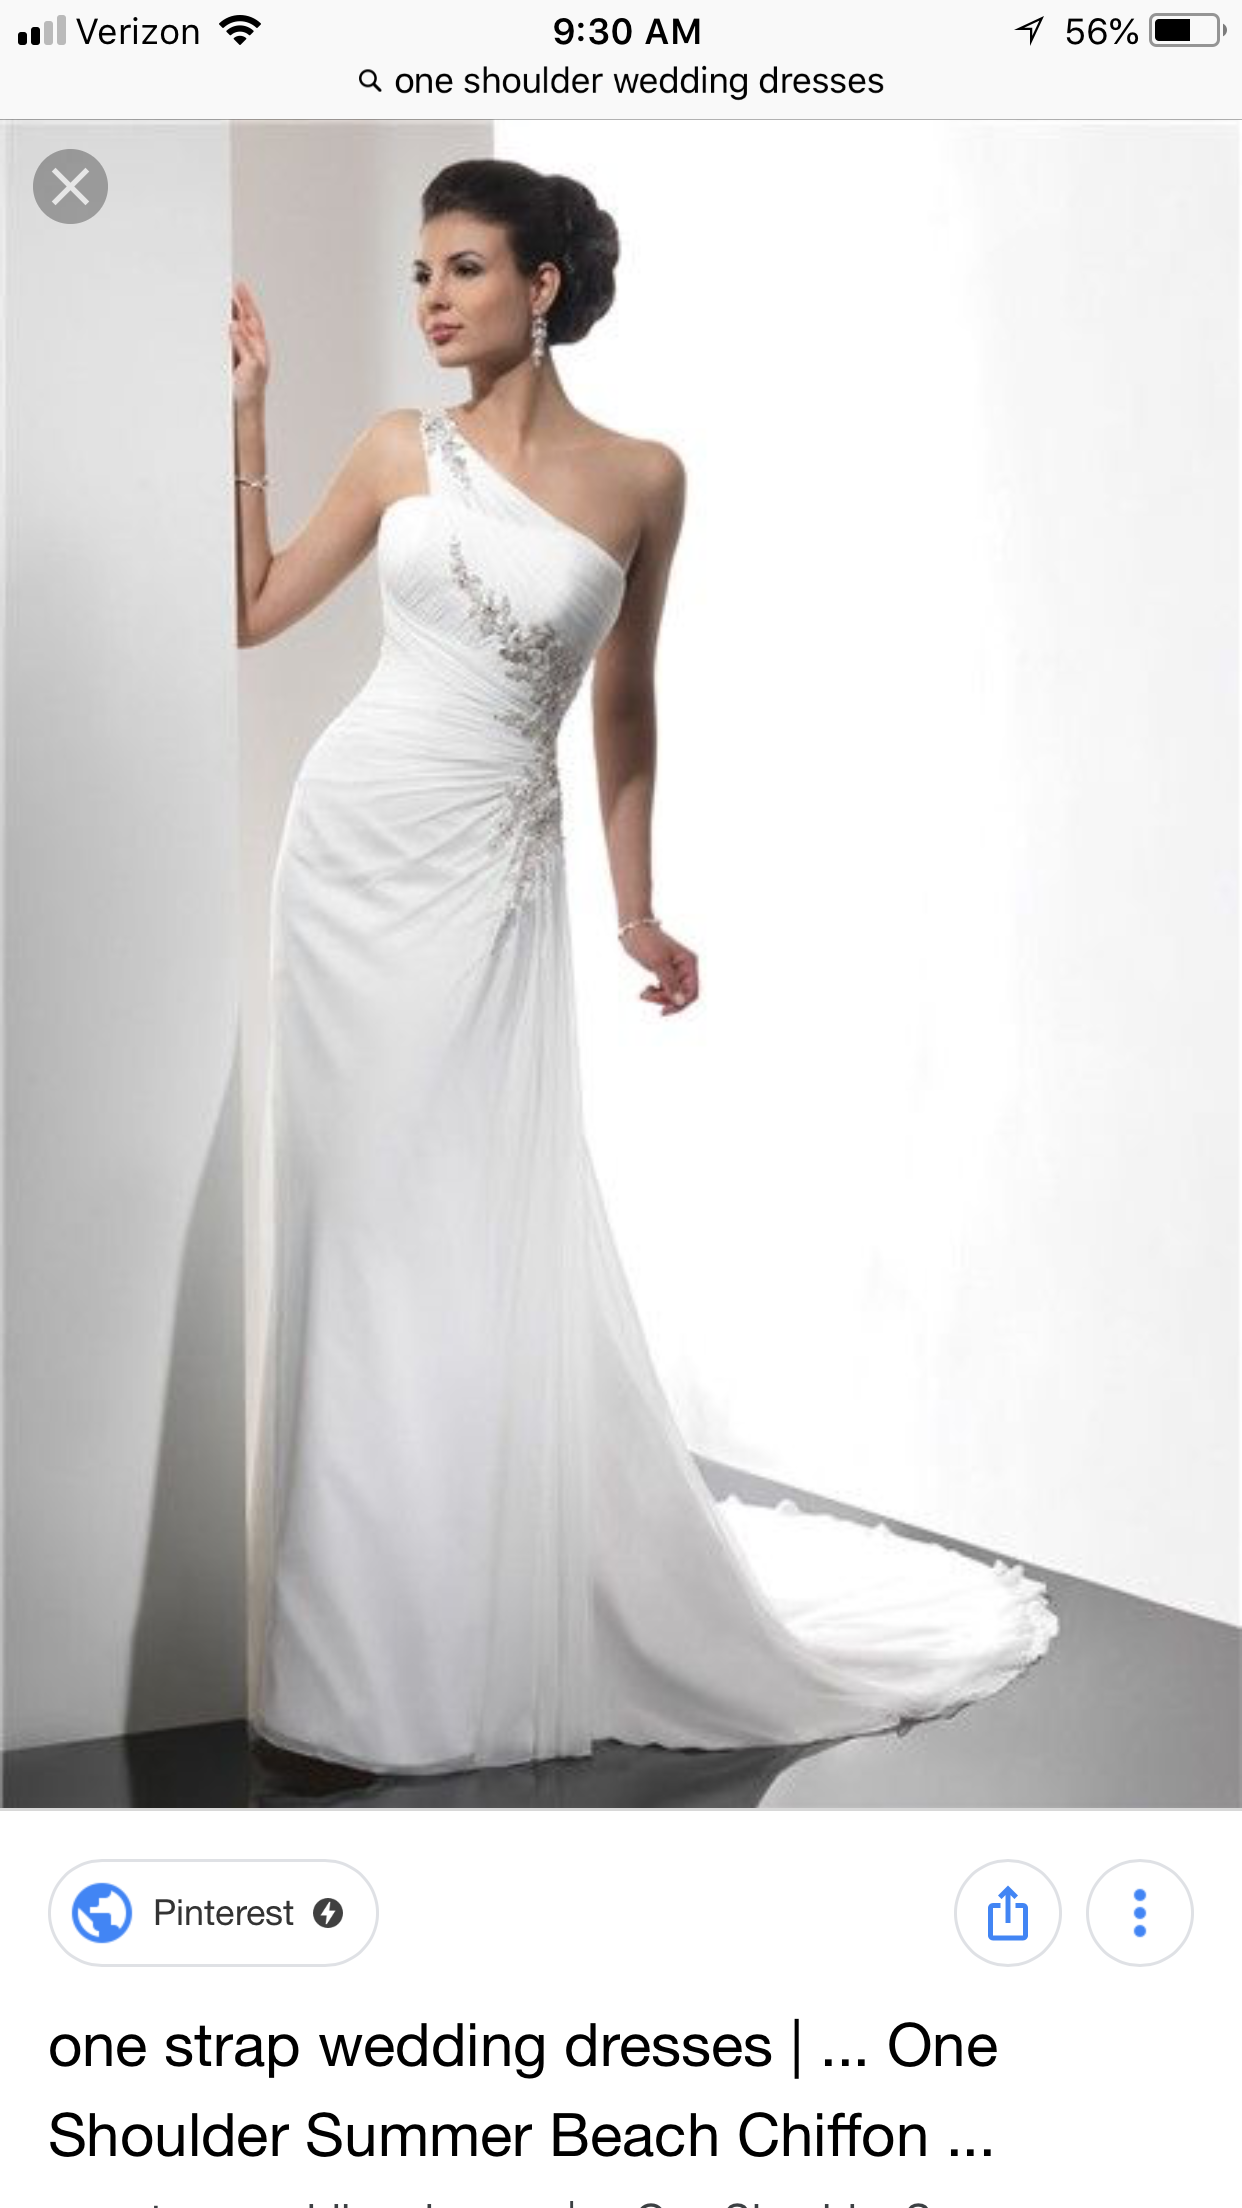 One strap wedding dress  Pin by Victoria Alley on cAlleybrese Wedding Planning  Pinterest